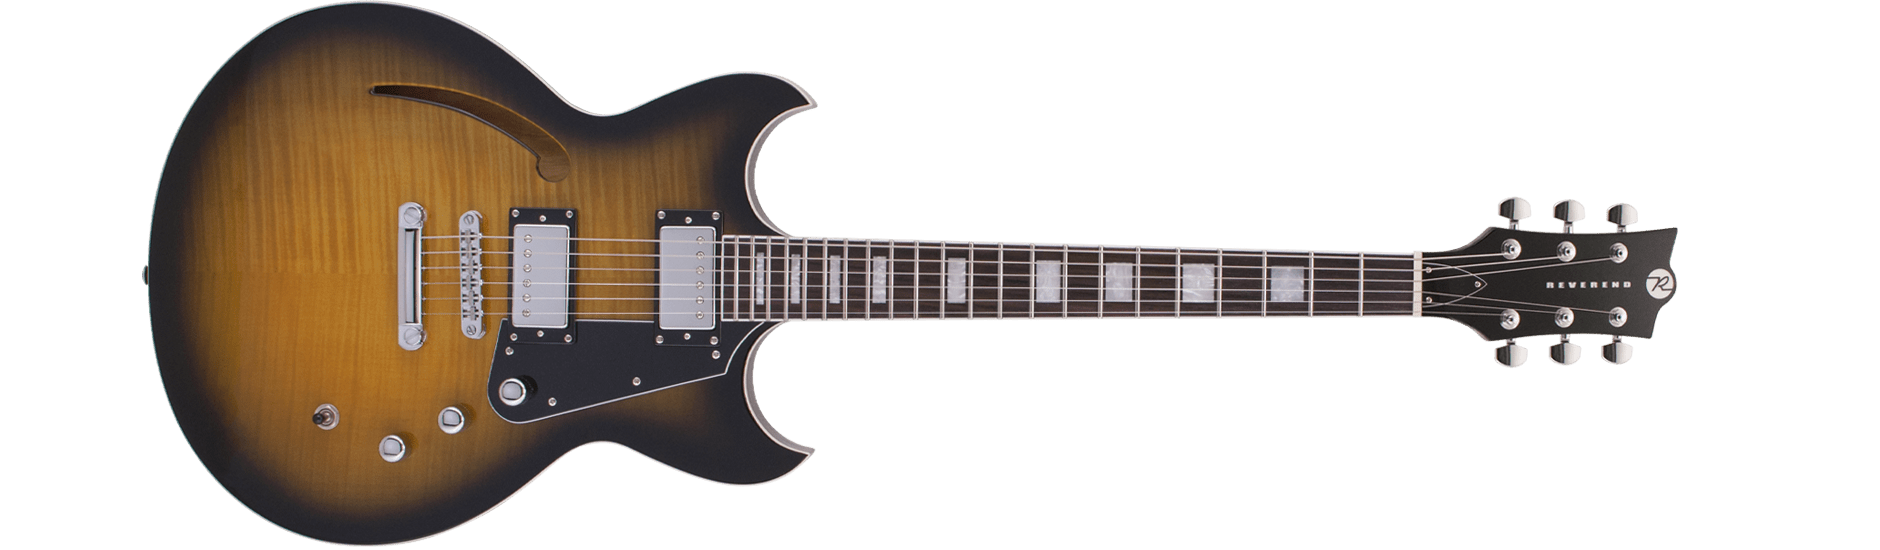 Reverend Guitars Manta Ray HB